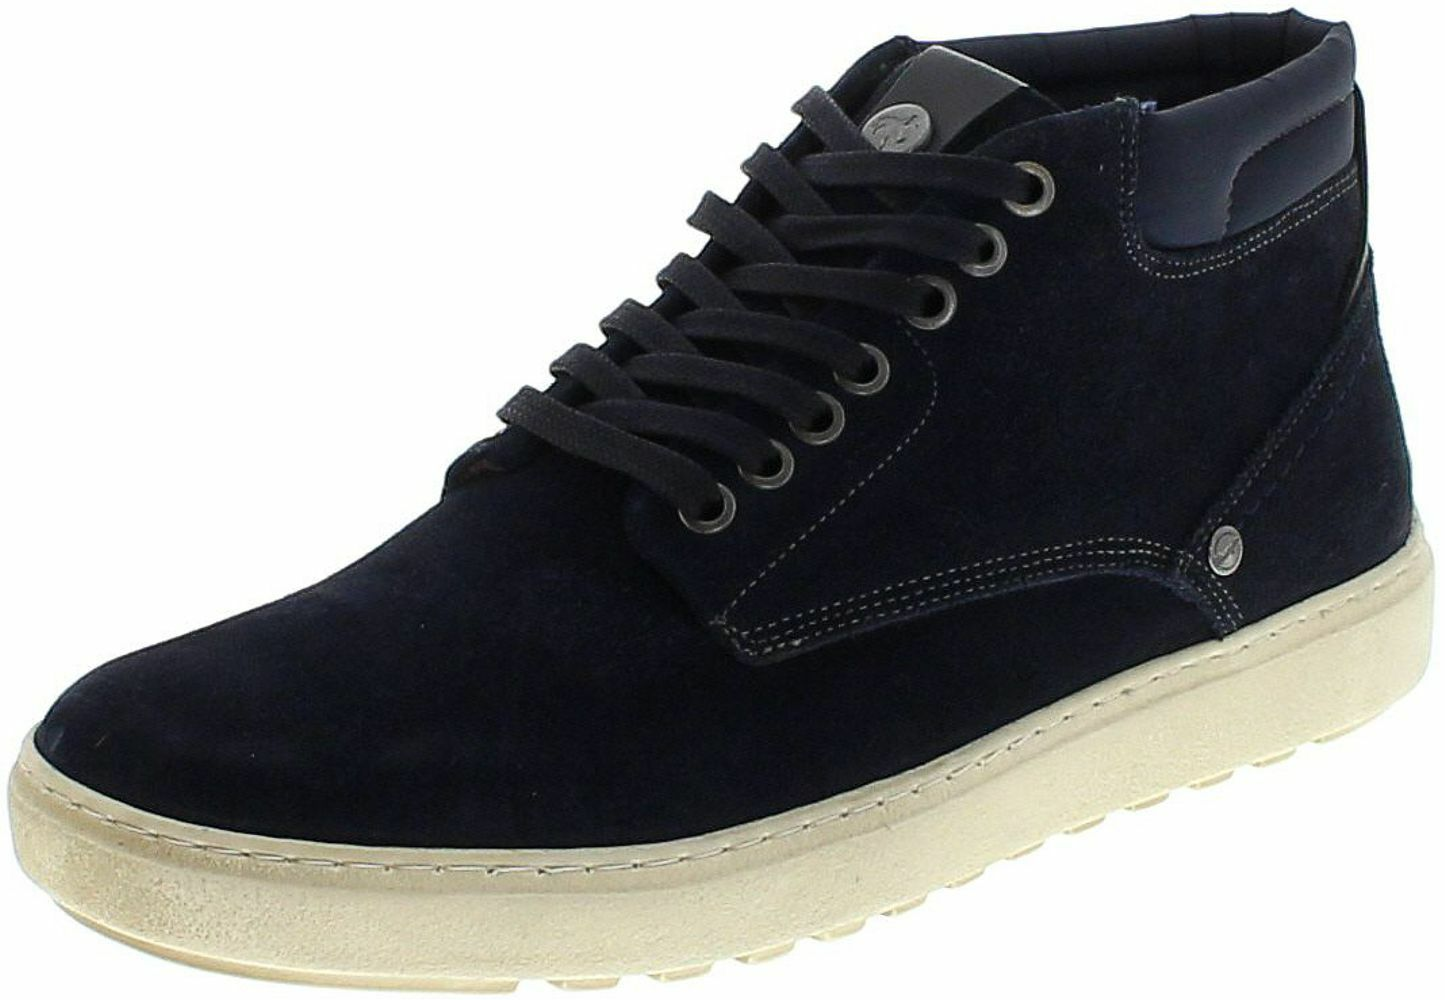 Wrangler HISTORIC CHUKKA SUEDE WM172022 Navy Herren Chukka Blau High Top Turnschuhe